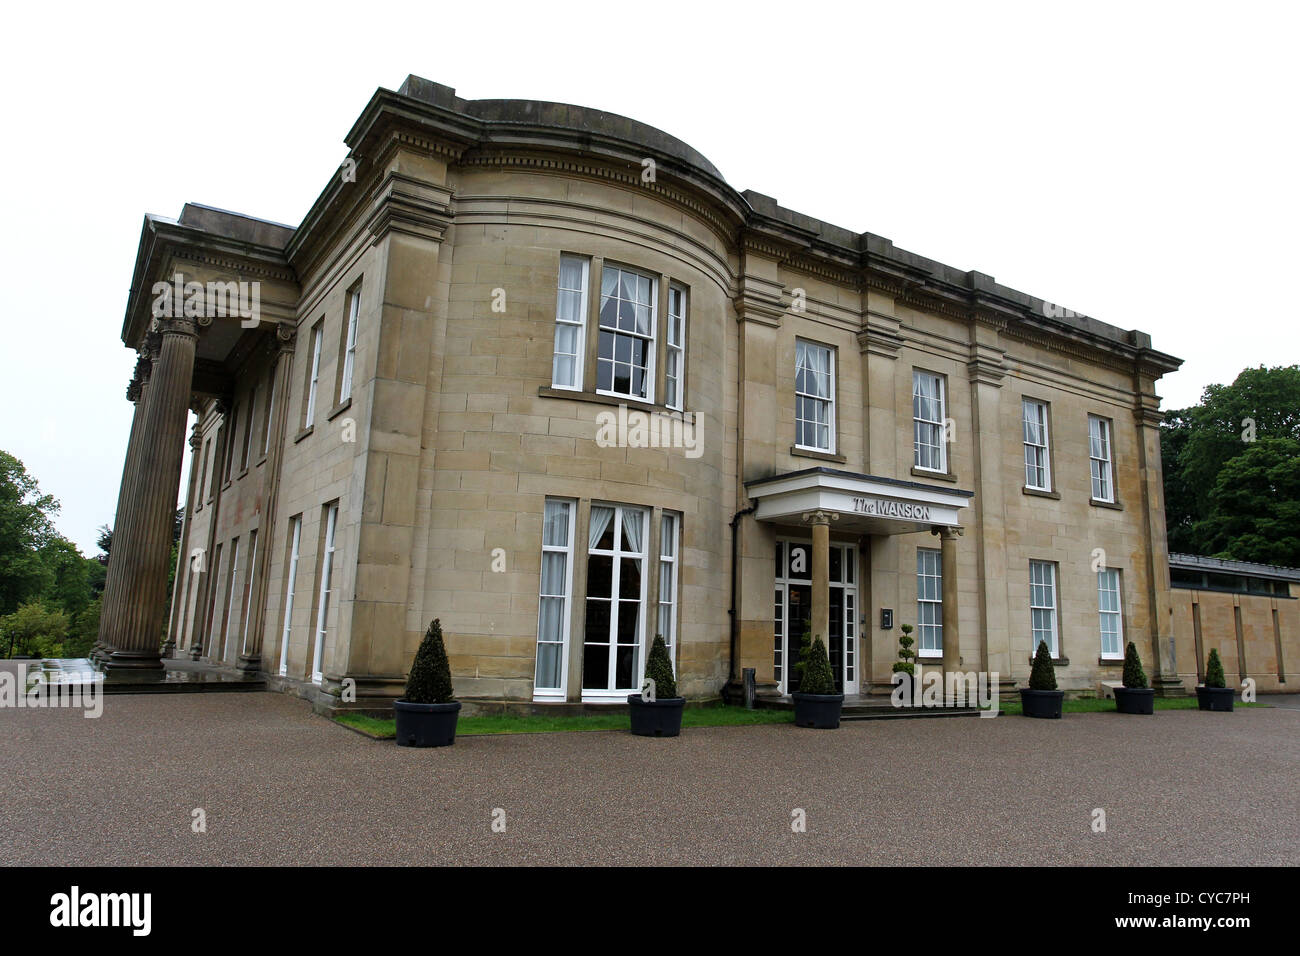 The Mansion wedding and conference venue in Roundhay Park, Leeds, West Yorkshire, UK. Stock Photo